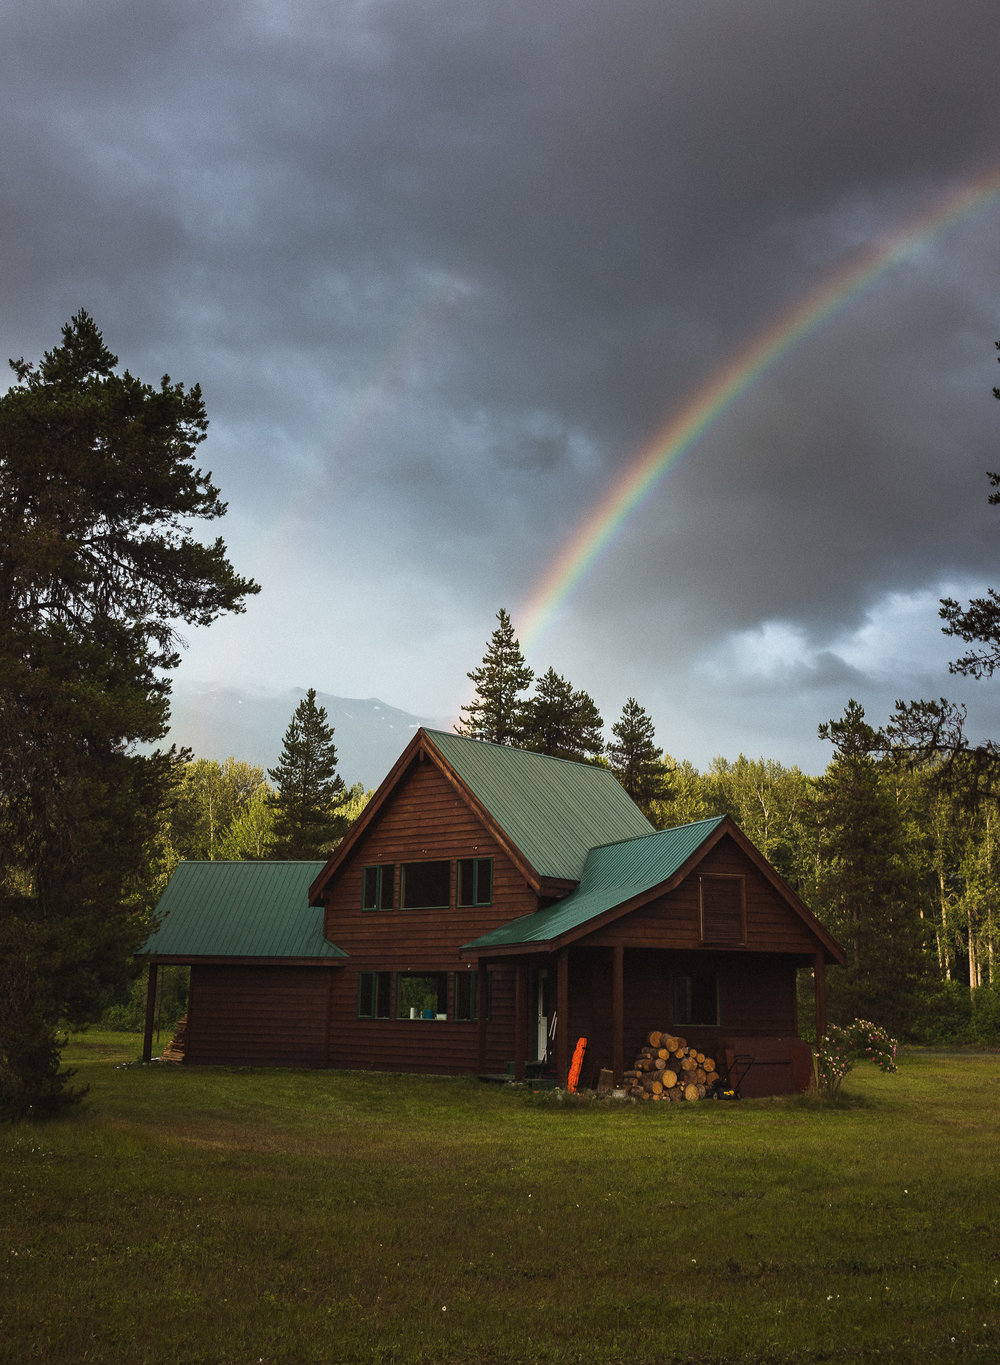 Welcome Home - Off the grid.